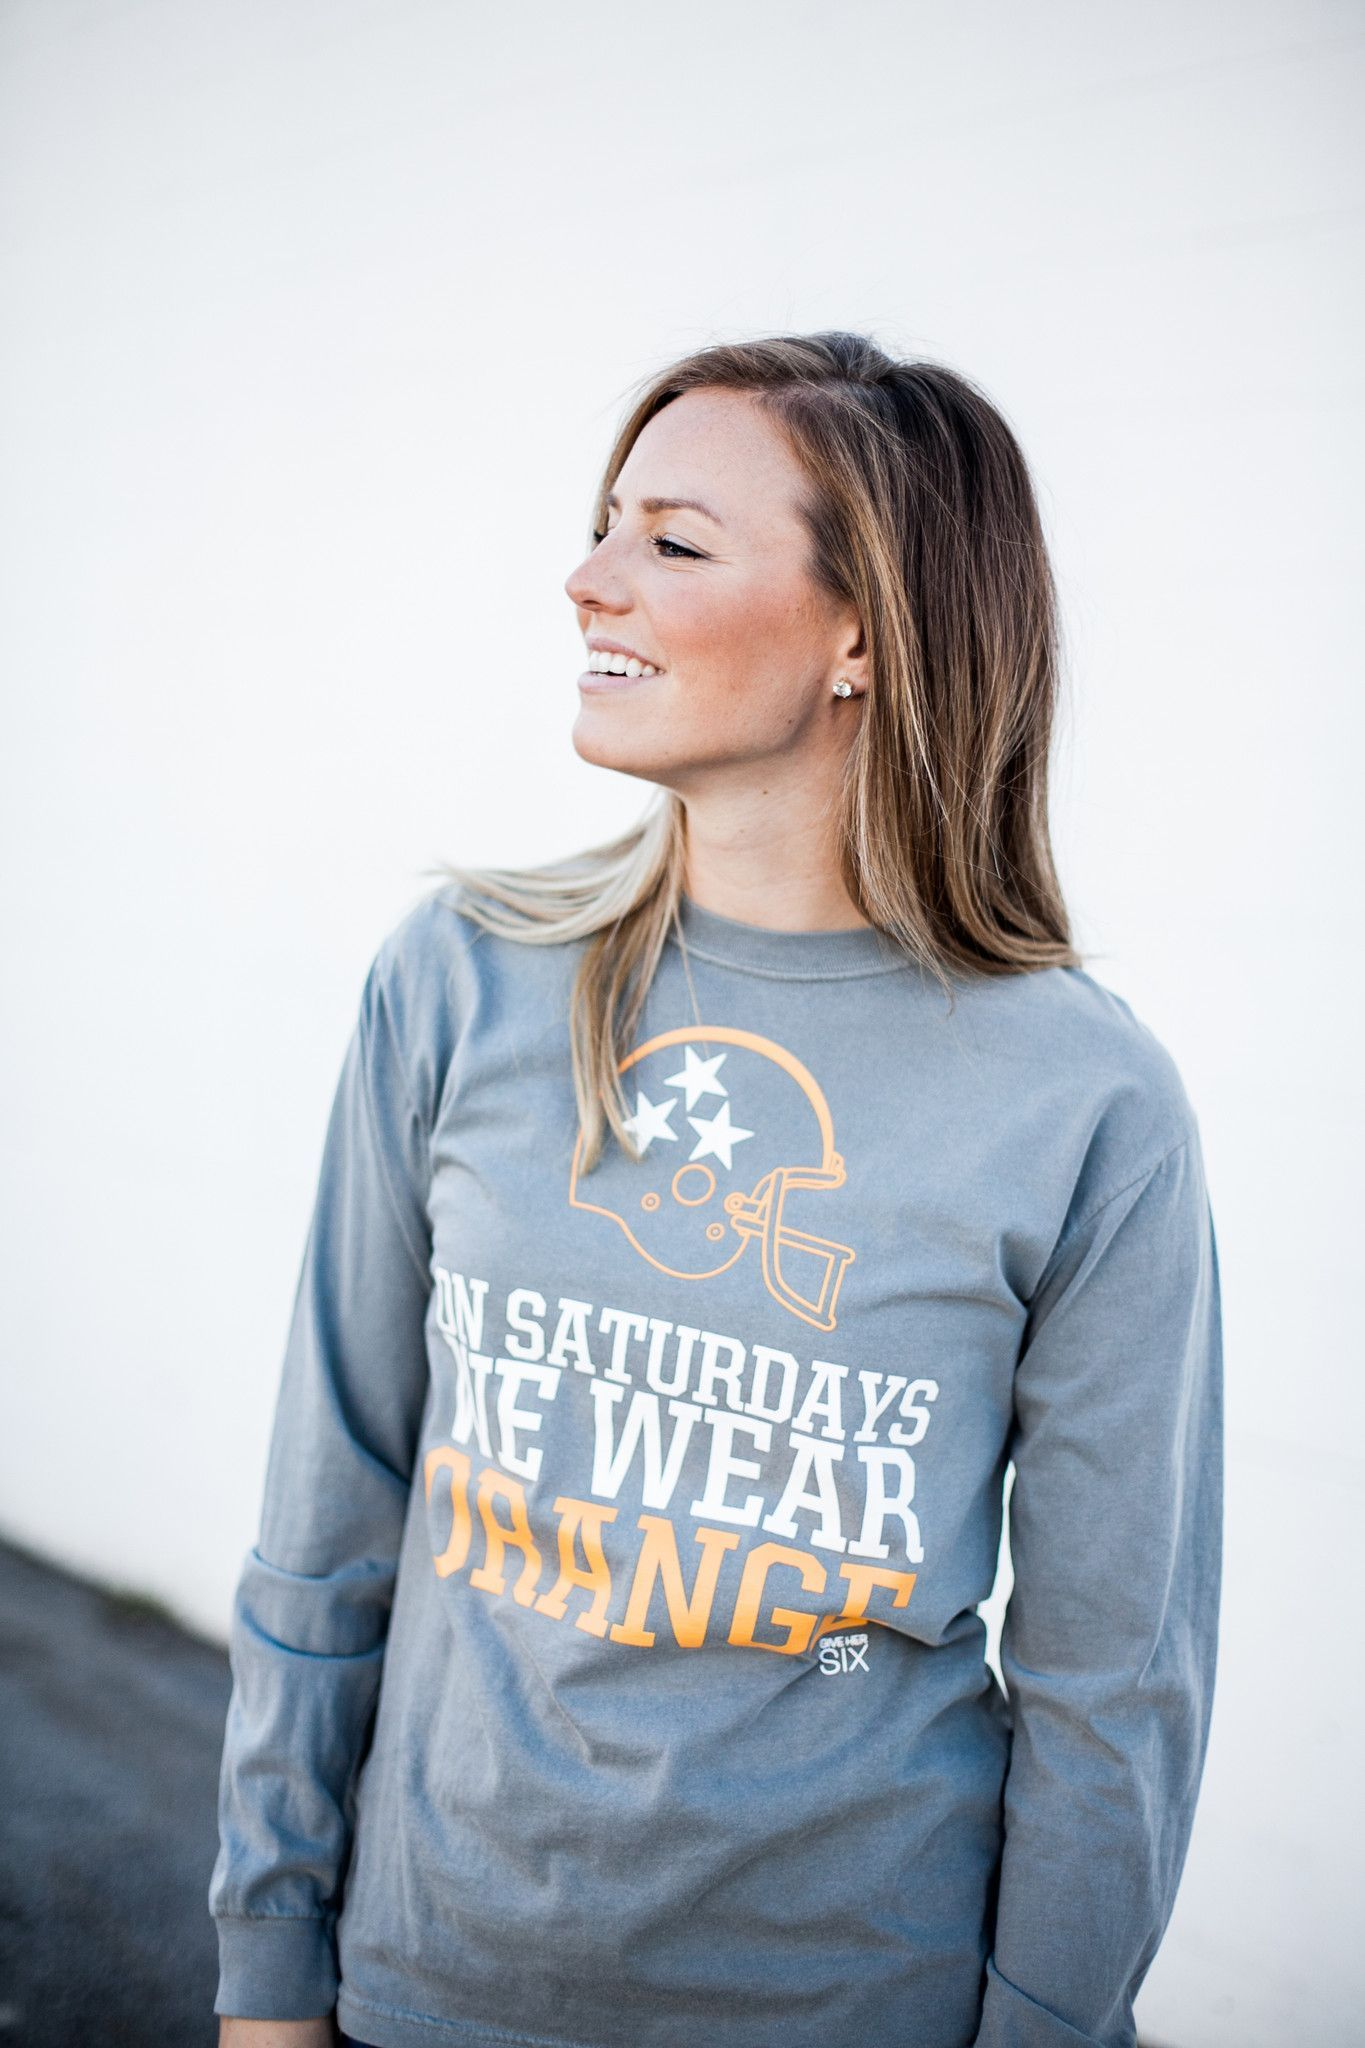 On Saturdays We Wear Orange Comfort Colors Gameday Outfit Game Day Shirts College Gameday Outfits [ 2048 x 1365 Pixel ]